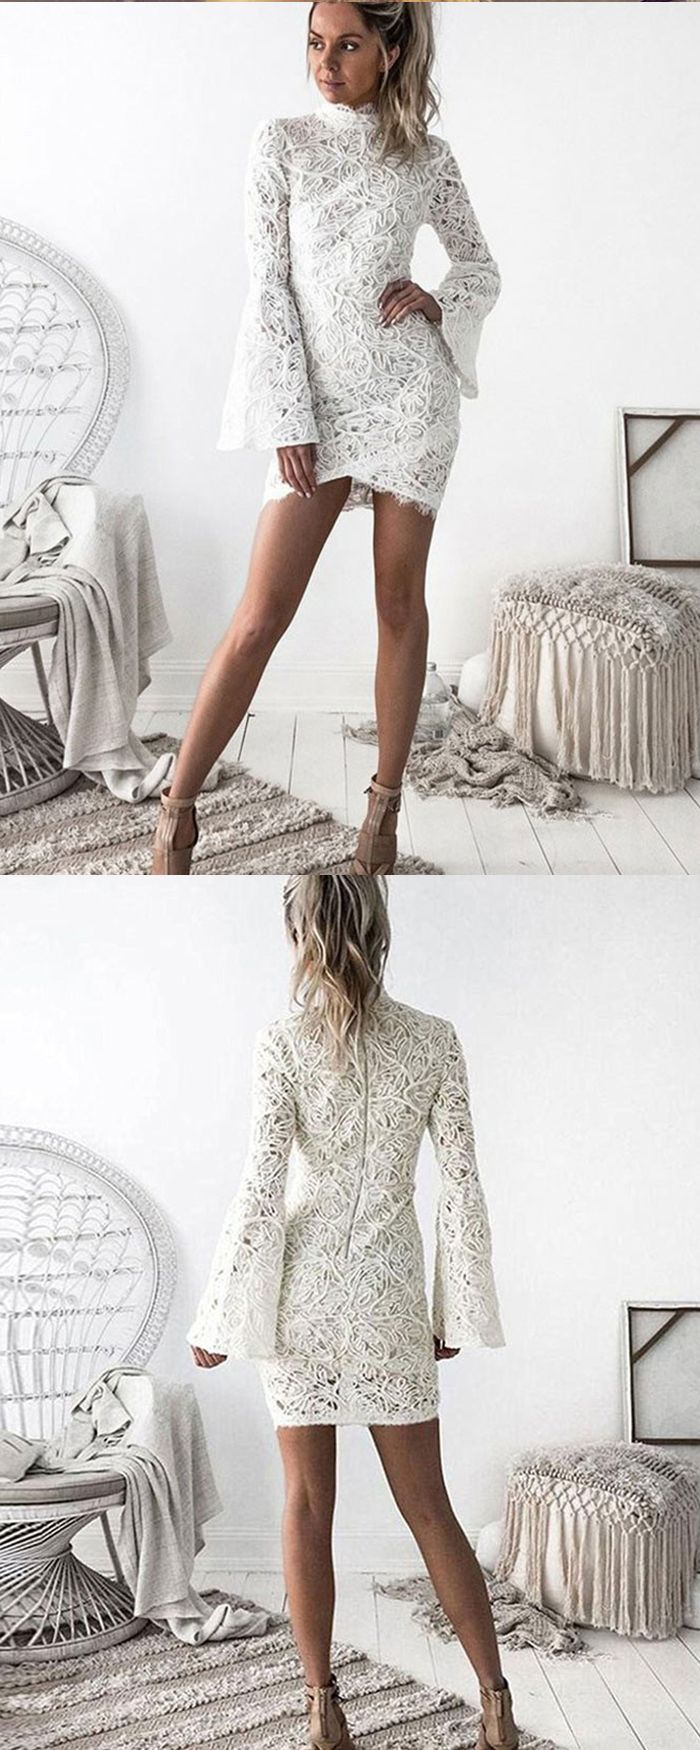 High Neck Ivory Lace Tight Graduation Dress With Bell Sleeves Hd3040 Formal Dresses Short Prom Dresses Short Short Dress Styles [ 1750 x 700 Pixel ]